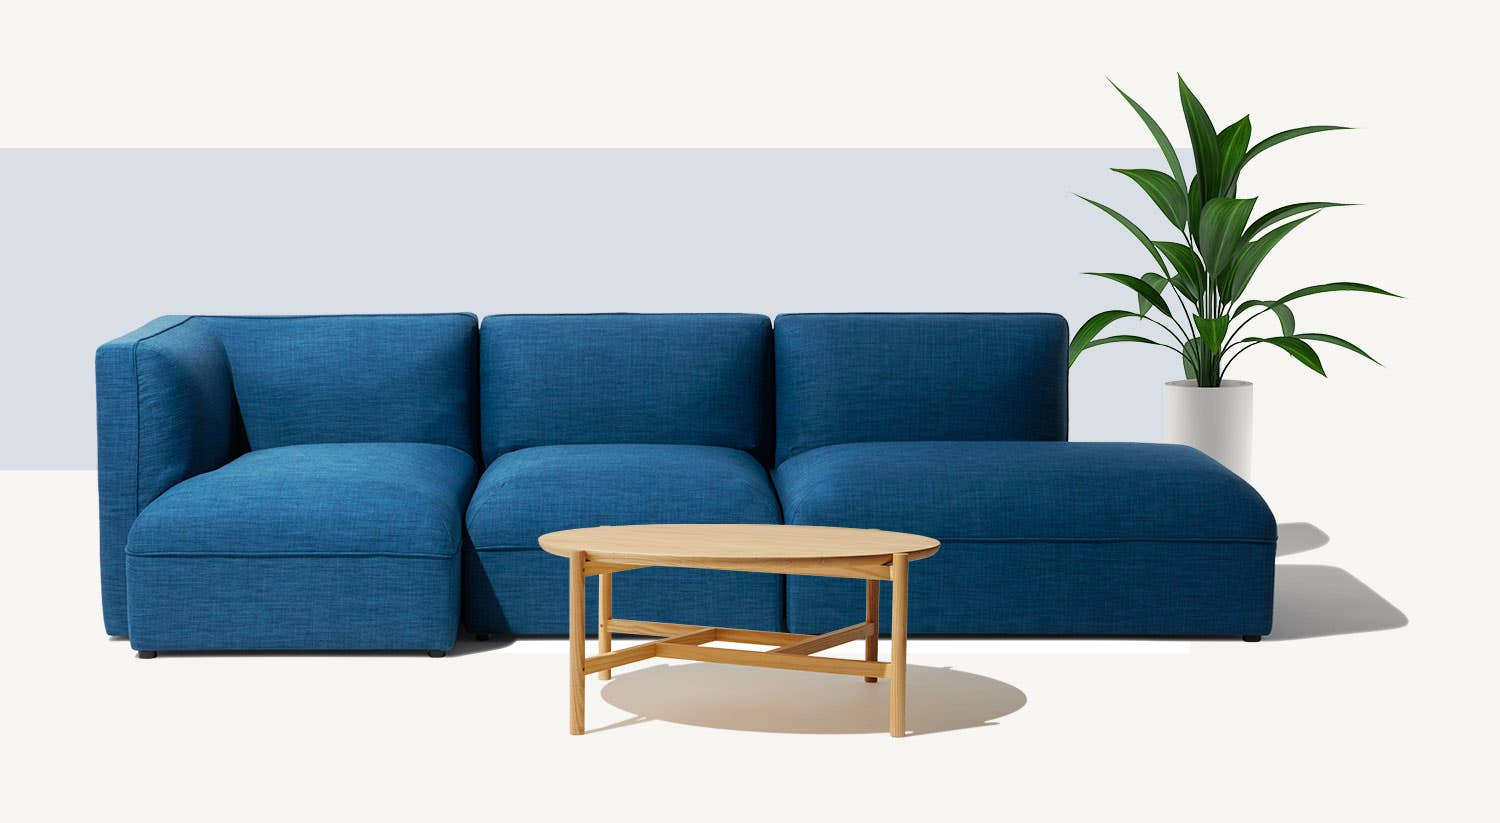 Loom Sofa from Industry West